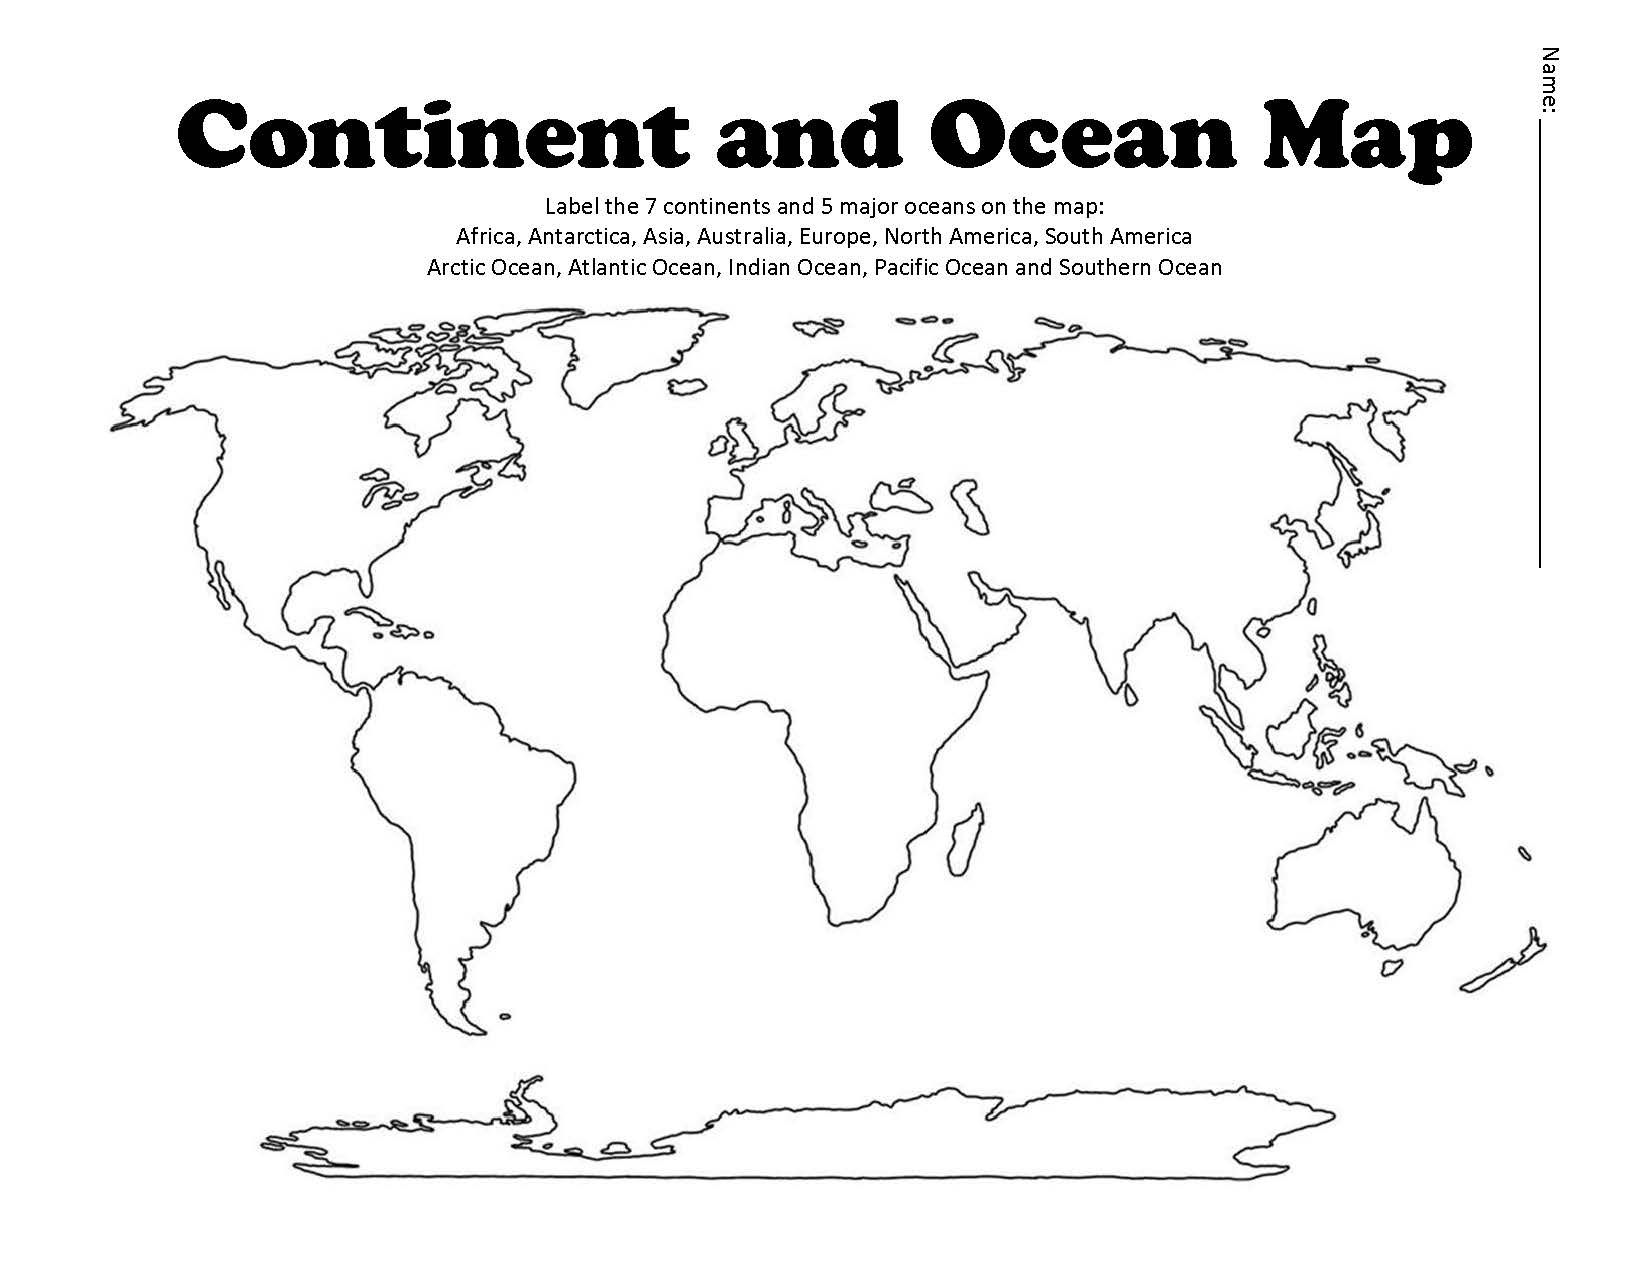 33 Blank Map To Label Continents And Oceans - Labels ...